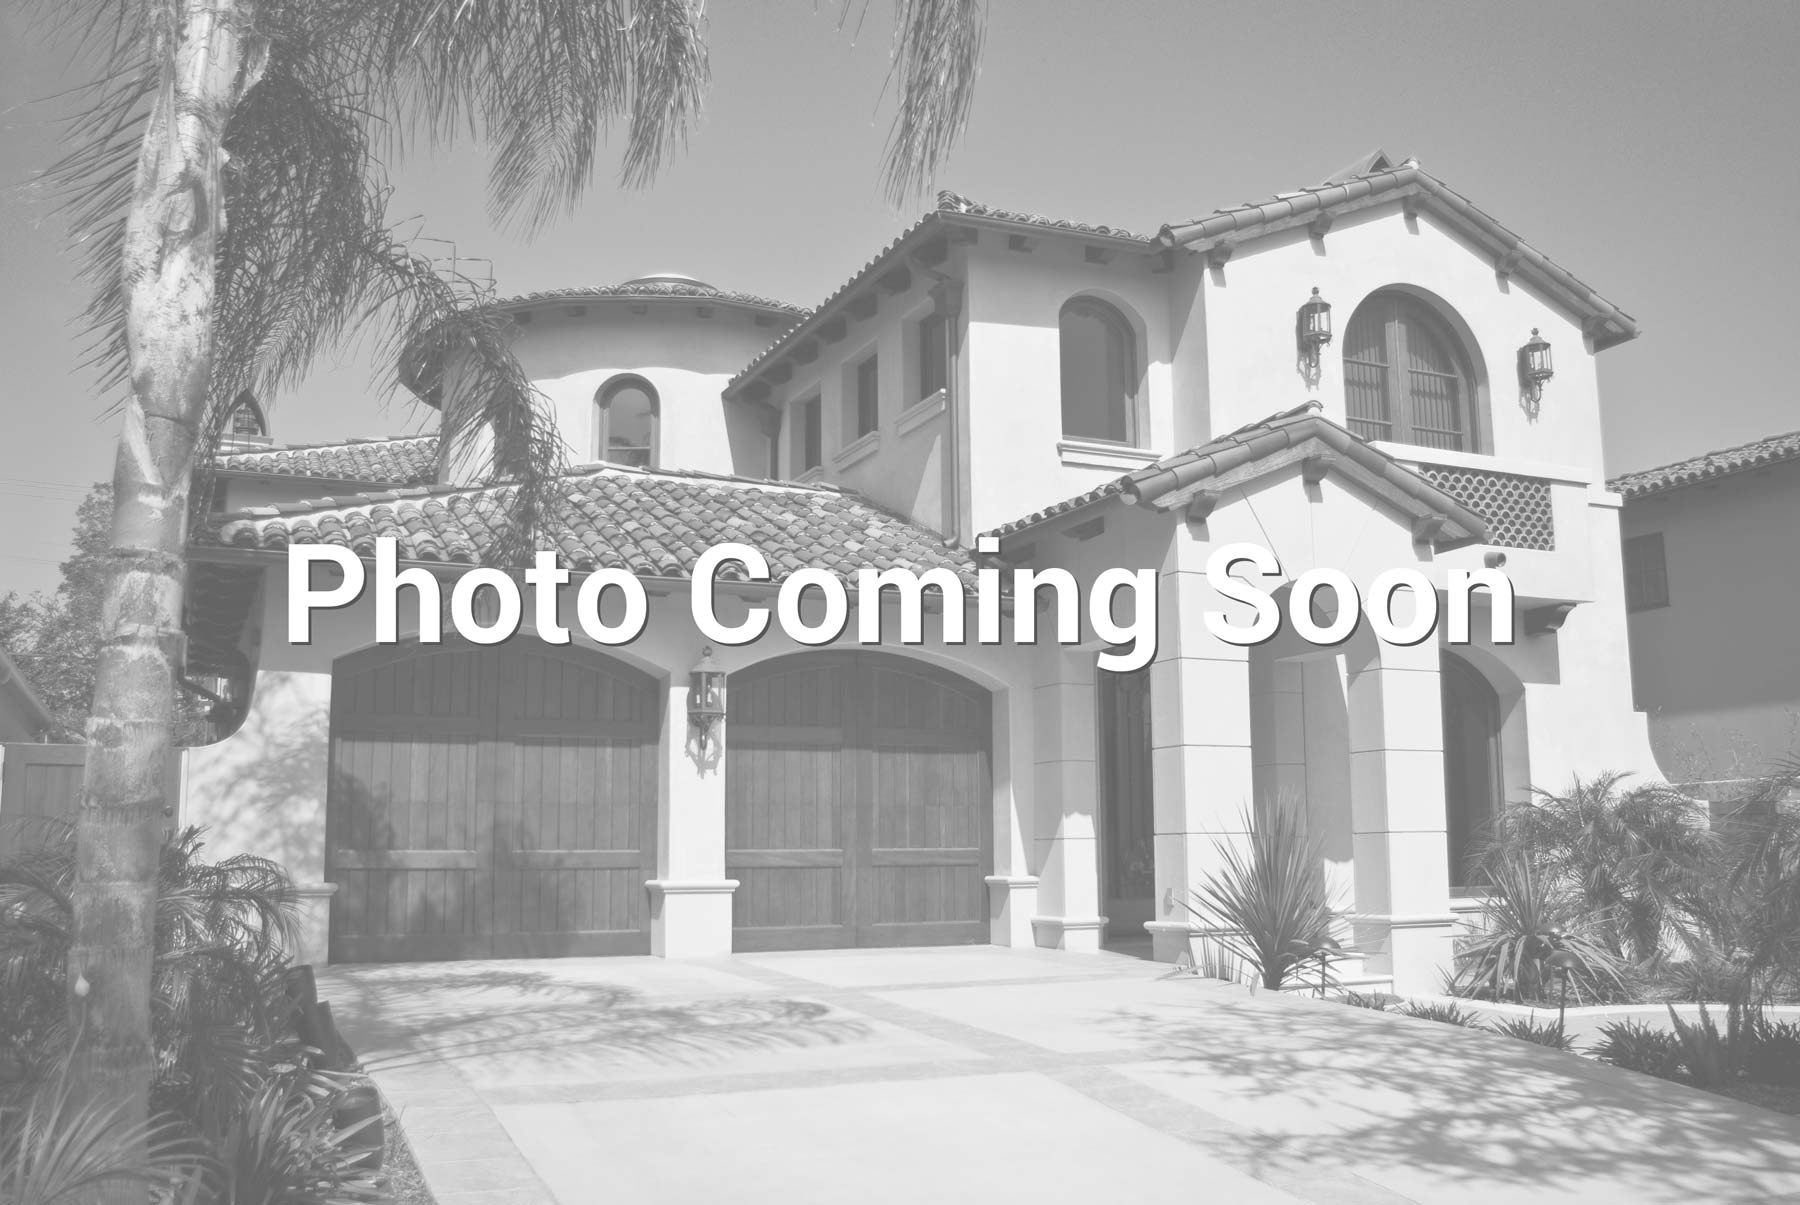 $1,510,000 - 3Br/3Ba -  for Sale in Imperial Beach, Imperial Beach